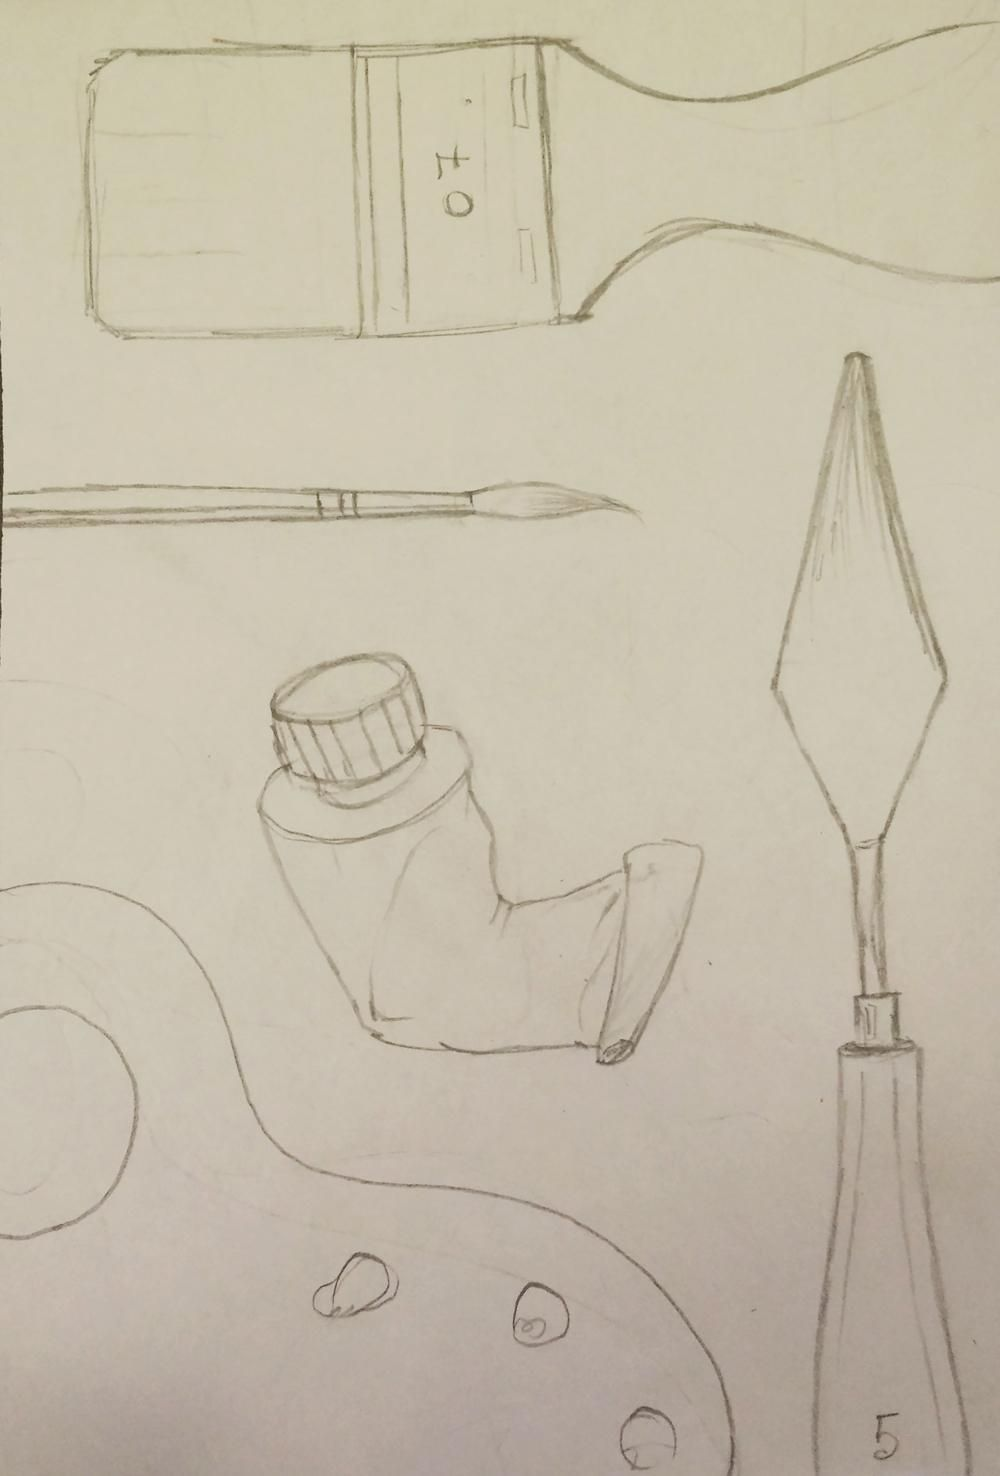 Painting tools - image 1 - student project